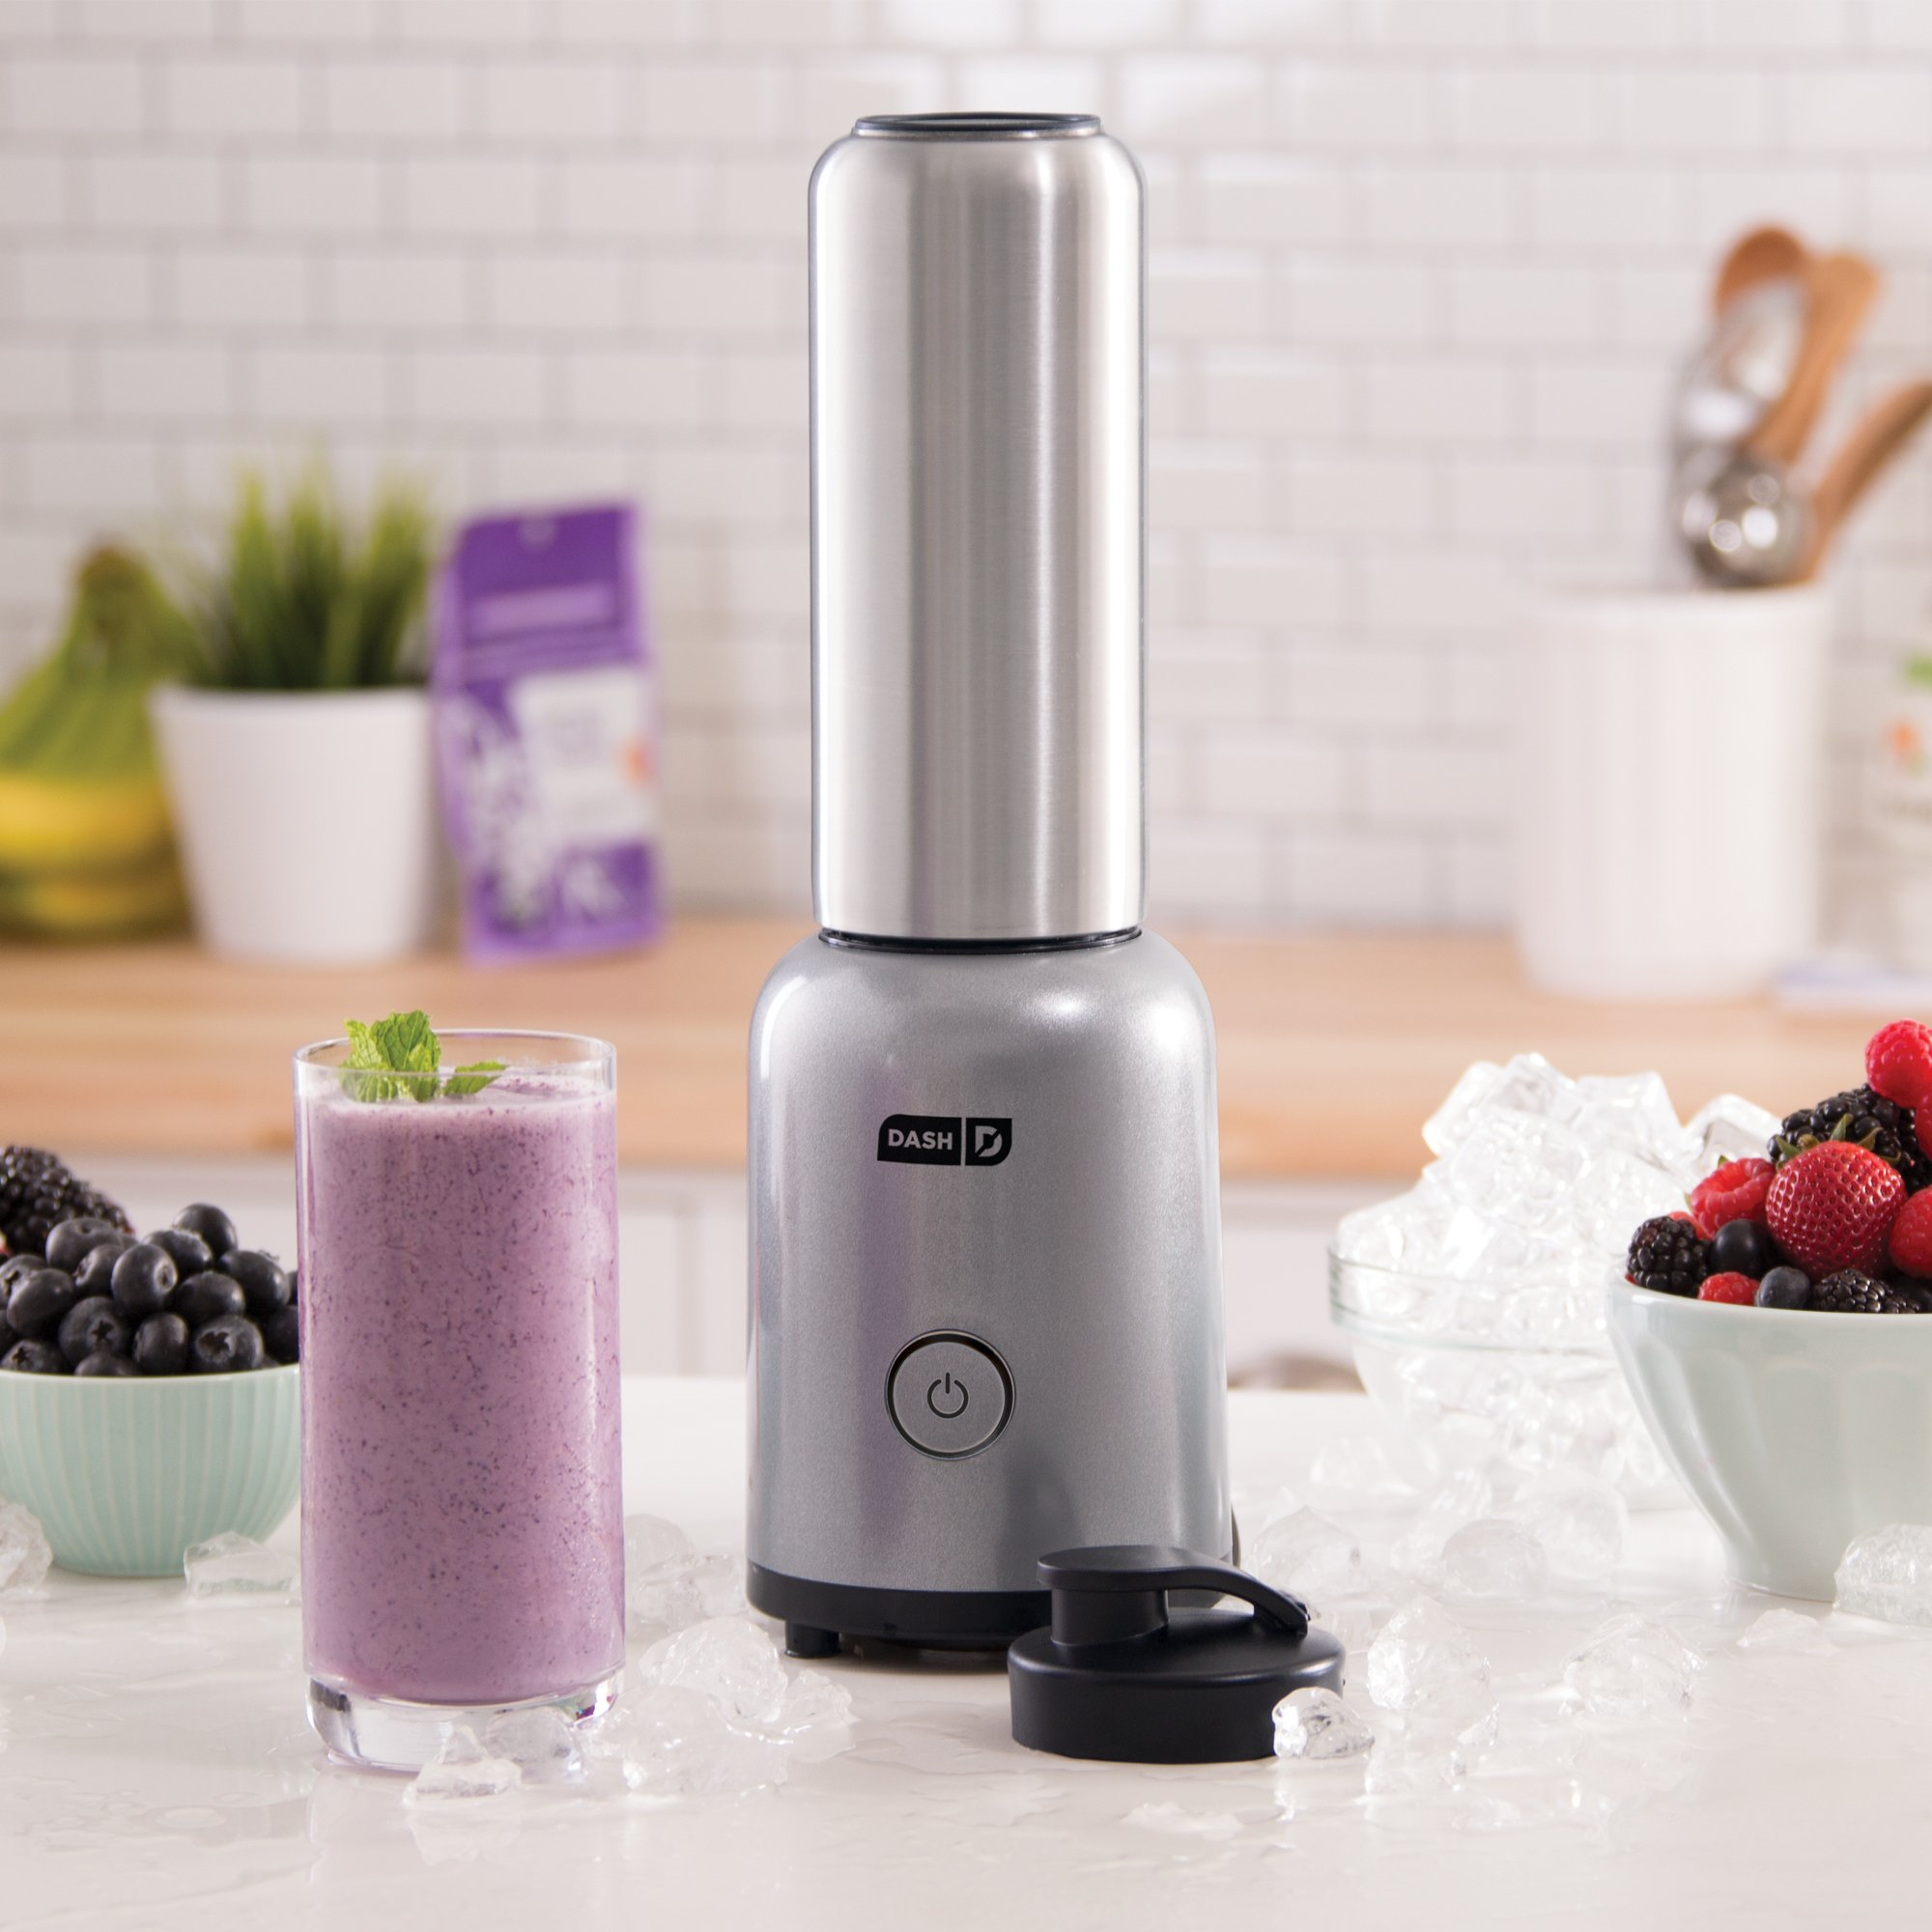 Dash Arctic Chill Blender: The Compact Personal Blender with Insulated Stainless-Steel Tumbler 16 oz + Travel Lid for Coffee Drinks, Frozen Cocktails, Smoothies by Dash (Image #2)